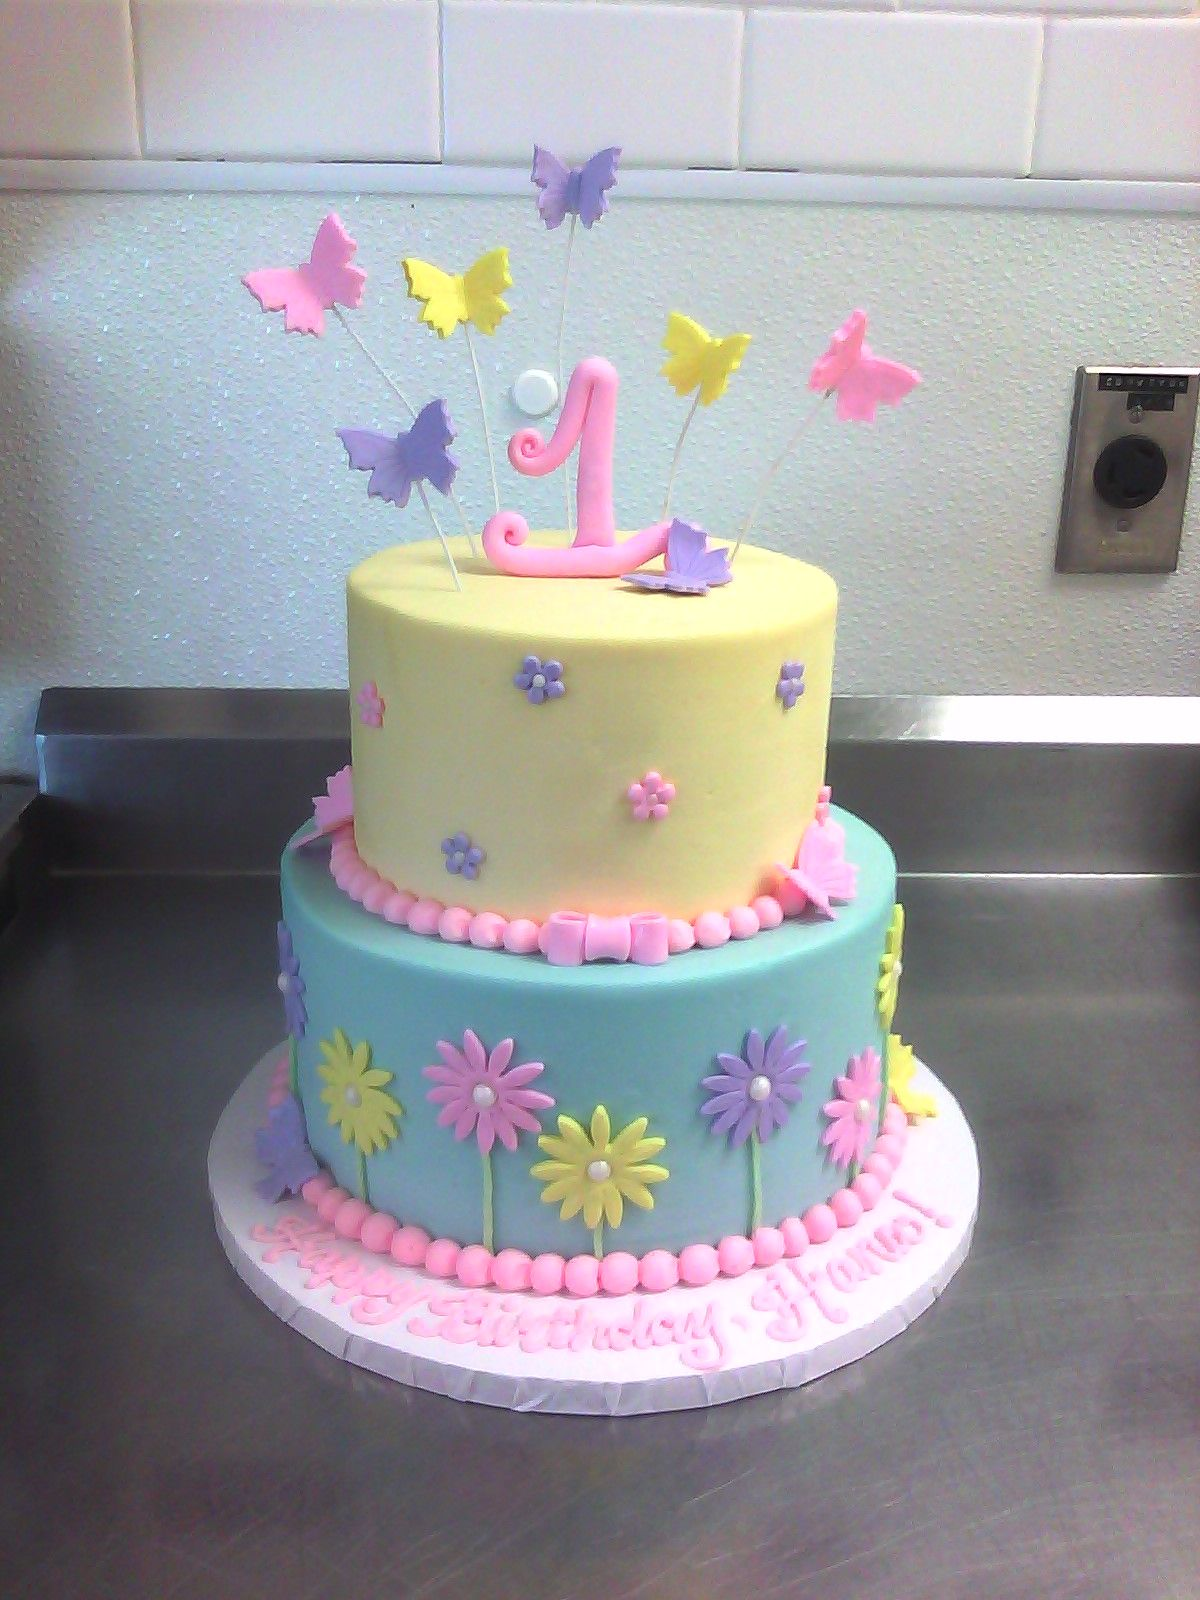 Pin by IG on Cake Pinterest Cake Sugar cookies and Birthday cakes